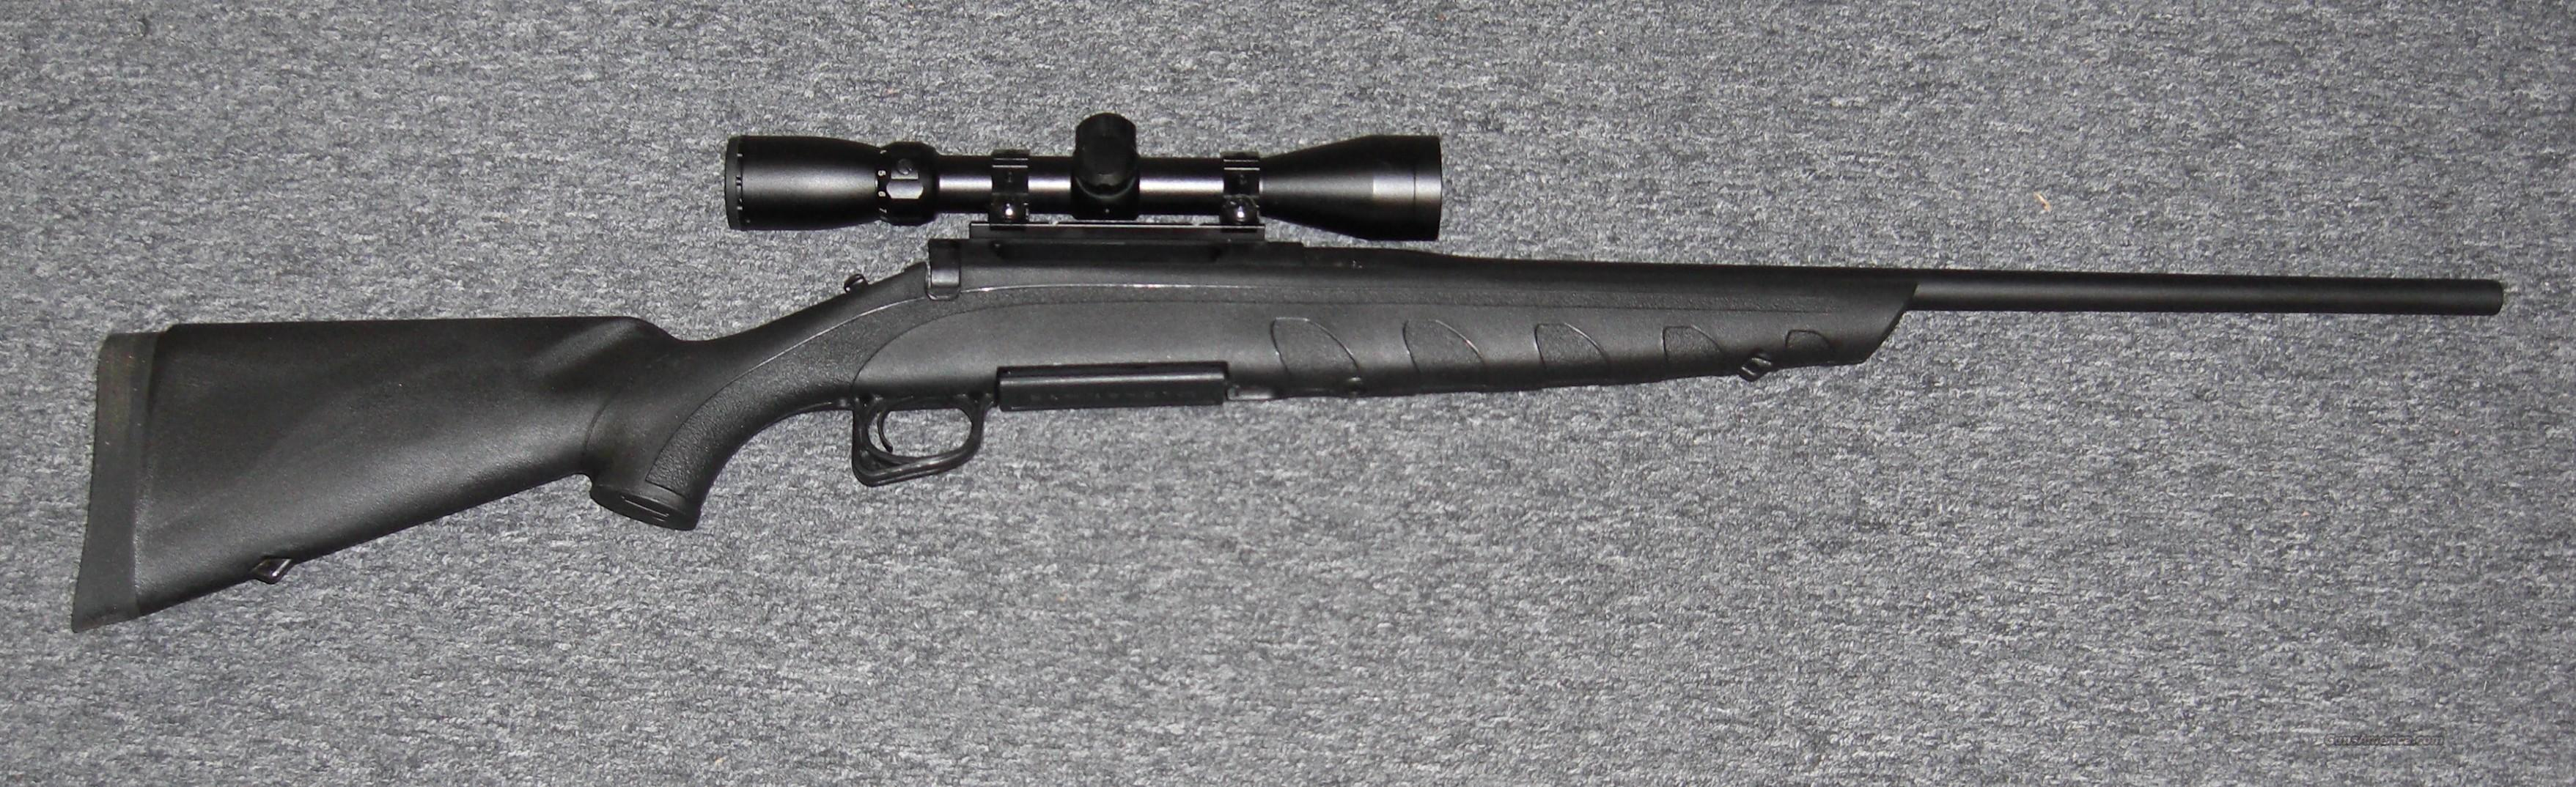 770 w/3-9x40 scope  7mm-08  Guns > Rifles > Remington Rifles - Modern > Model 700 > Sporting